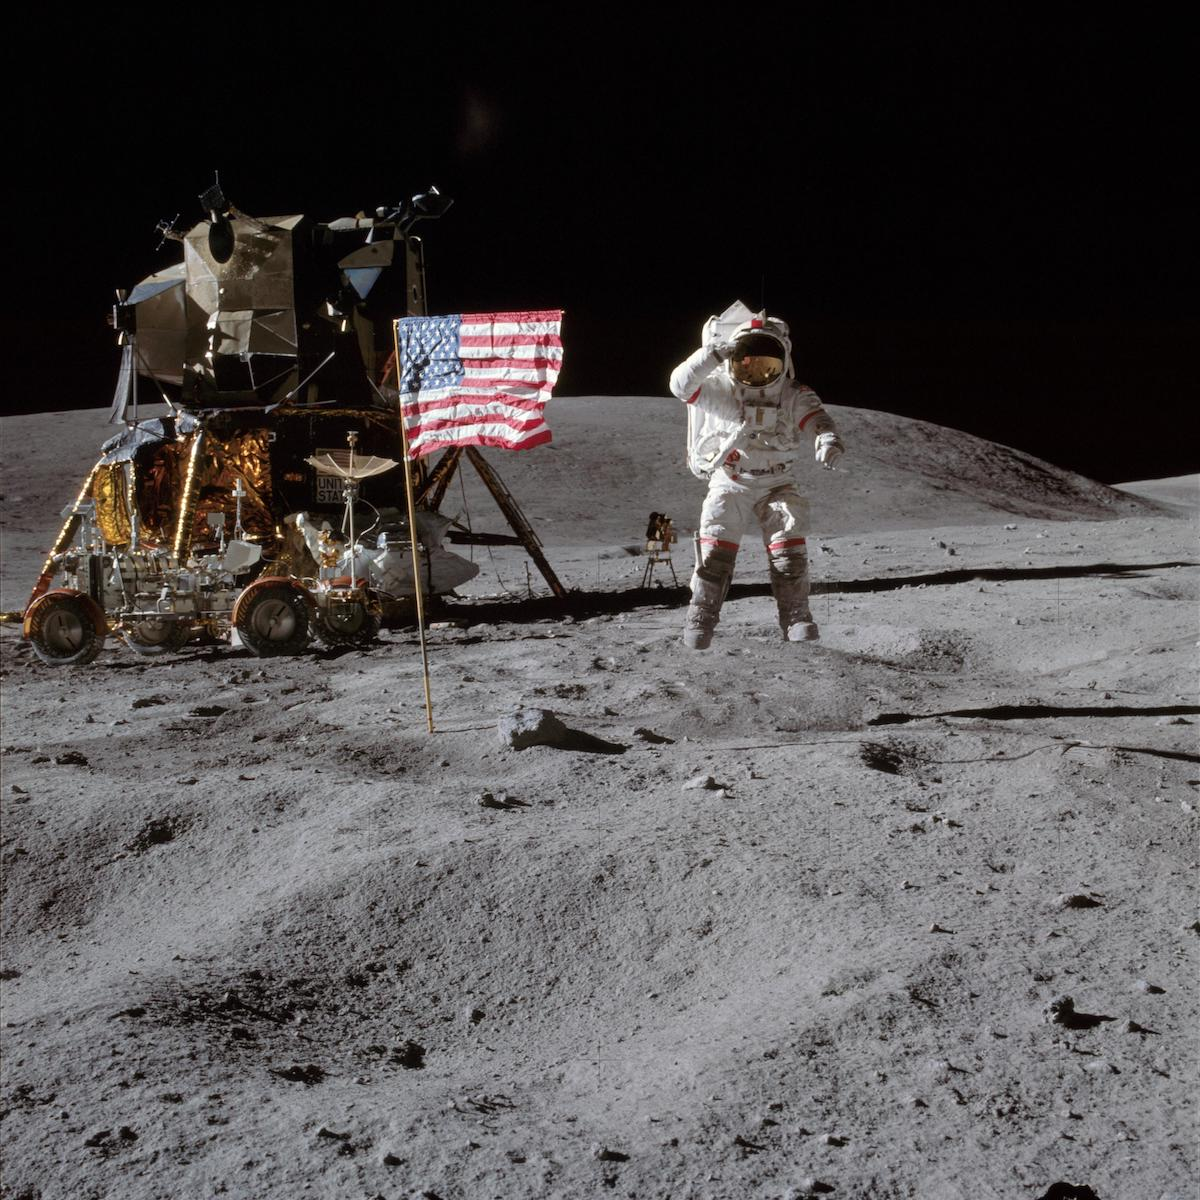 astronaut jumps and salutes near flag and lunar moduel